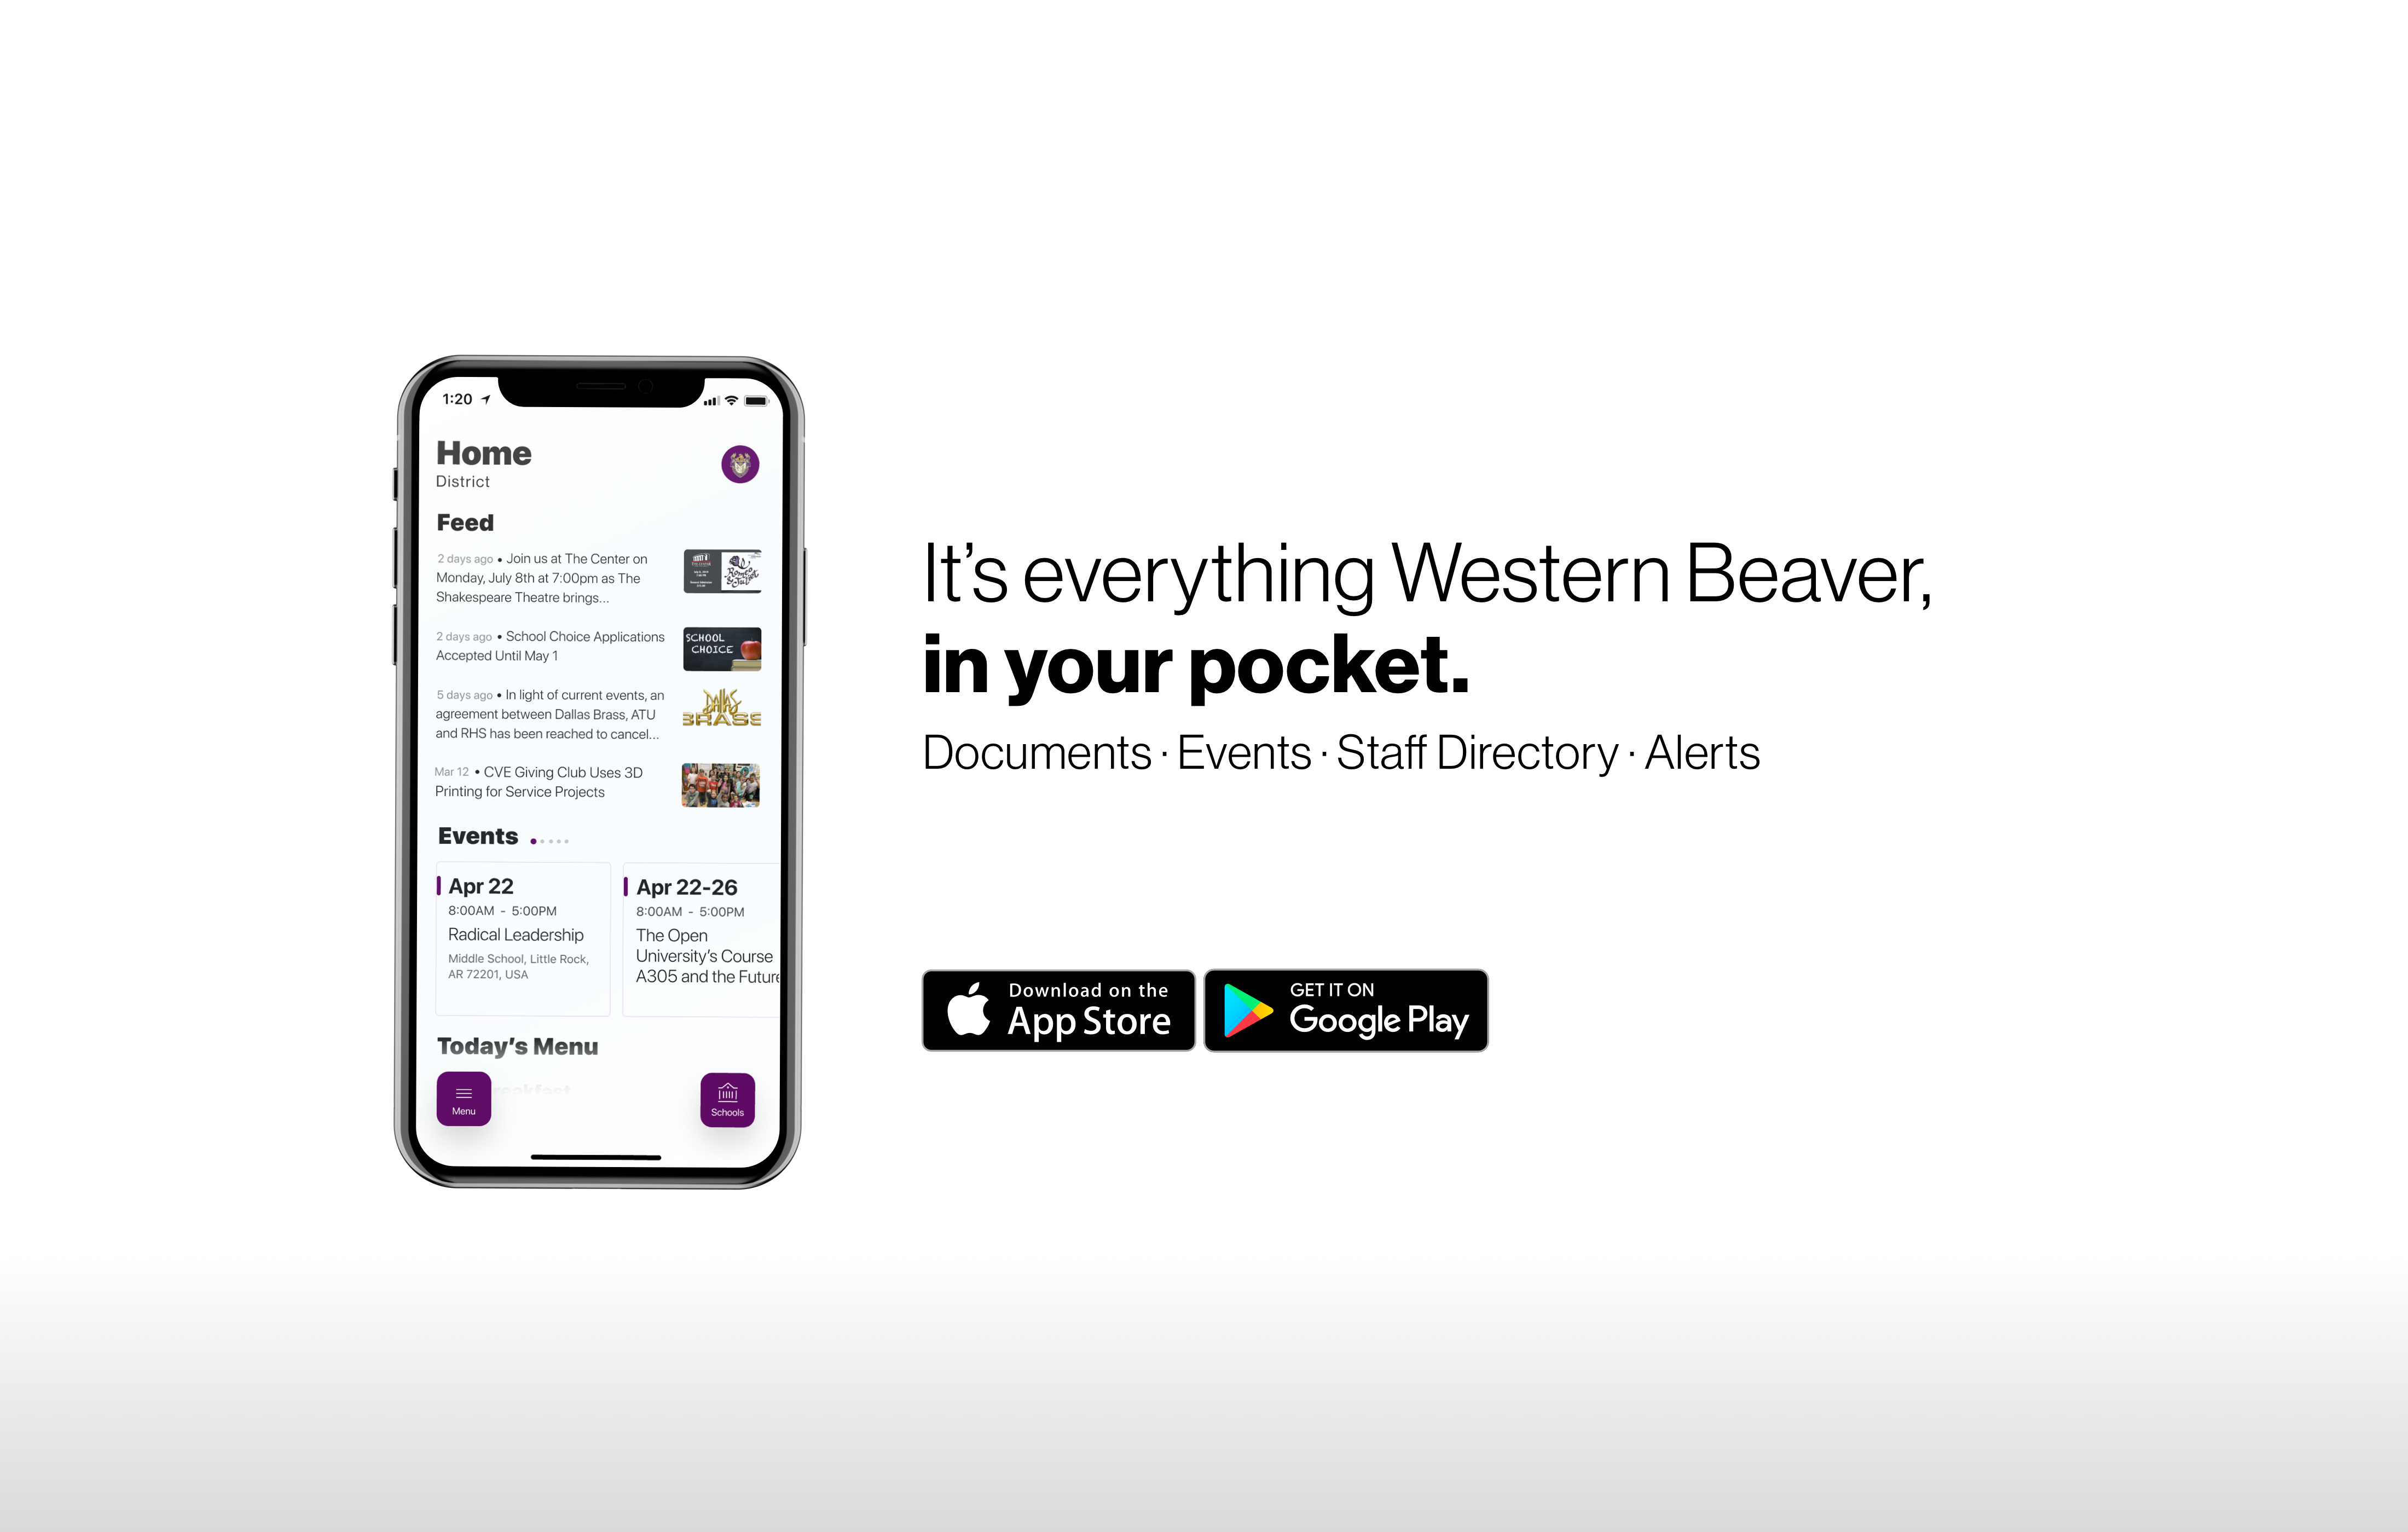 Download the our updated app! It's everything western beaver, in your pocket!